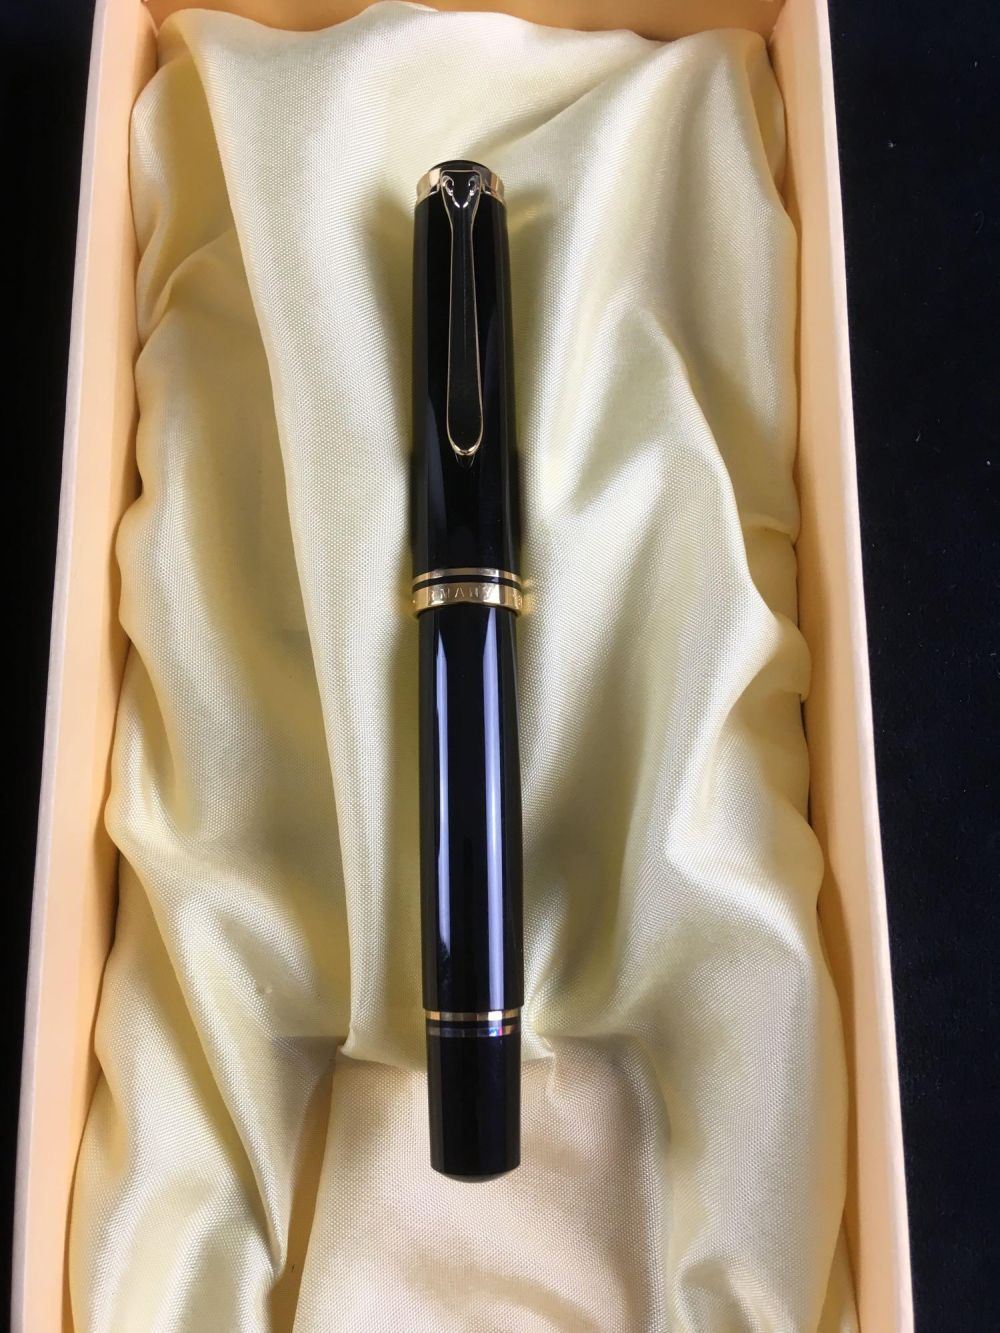 Lot 930: Pelikan Mechanical Pencil, New Old Stock